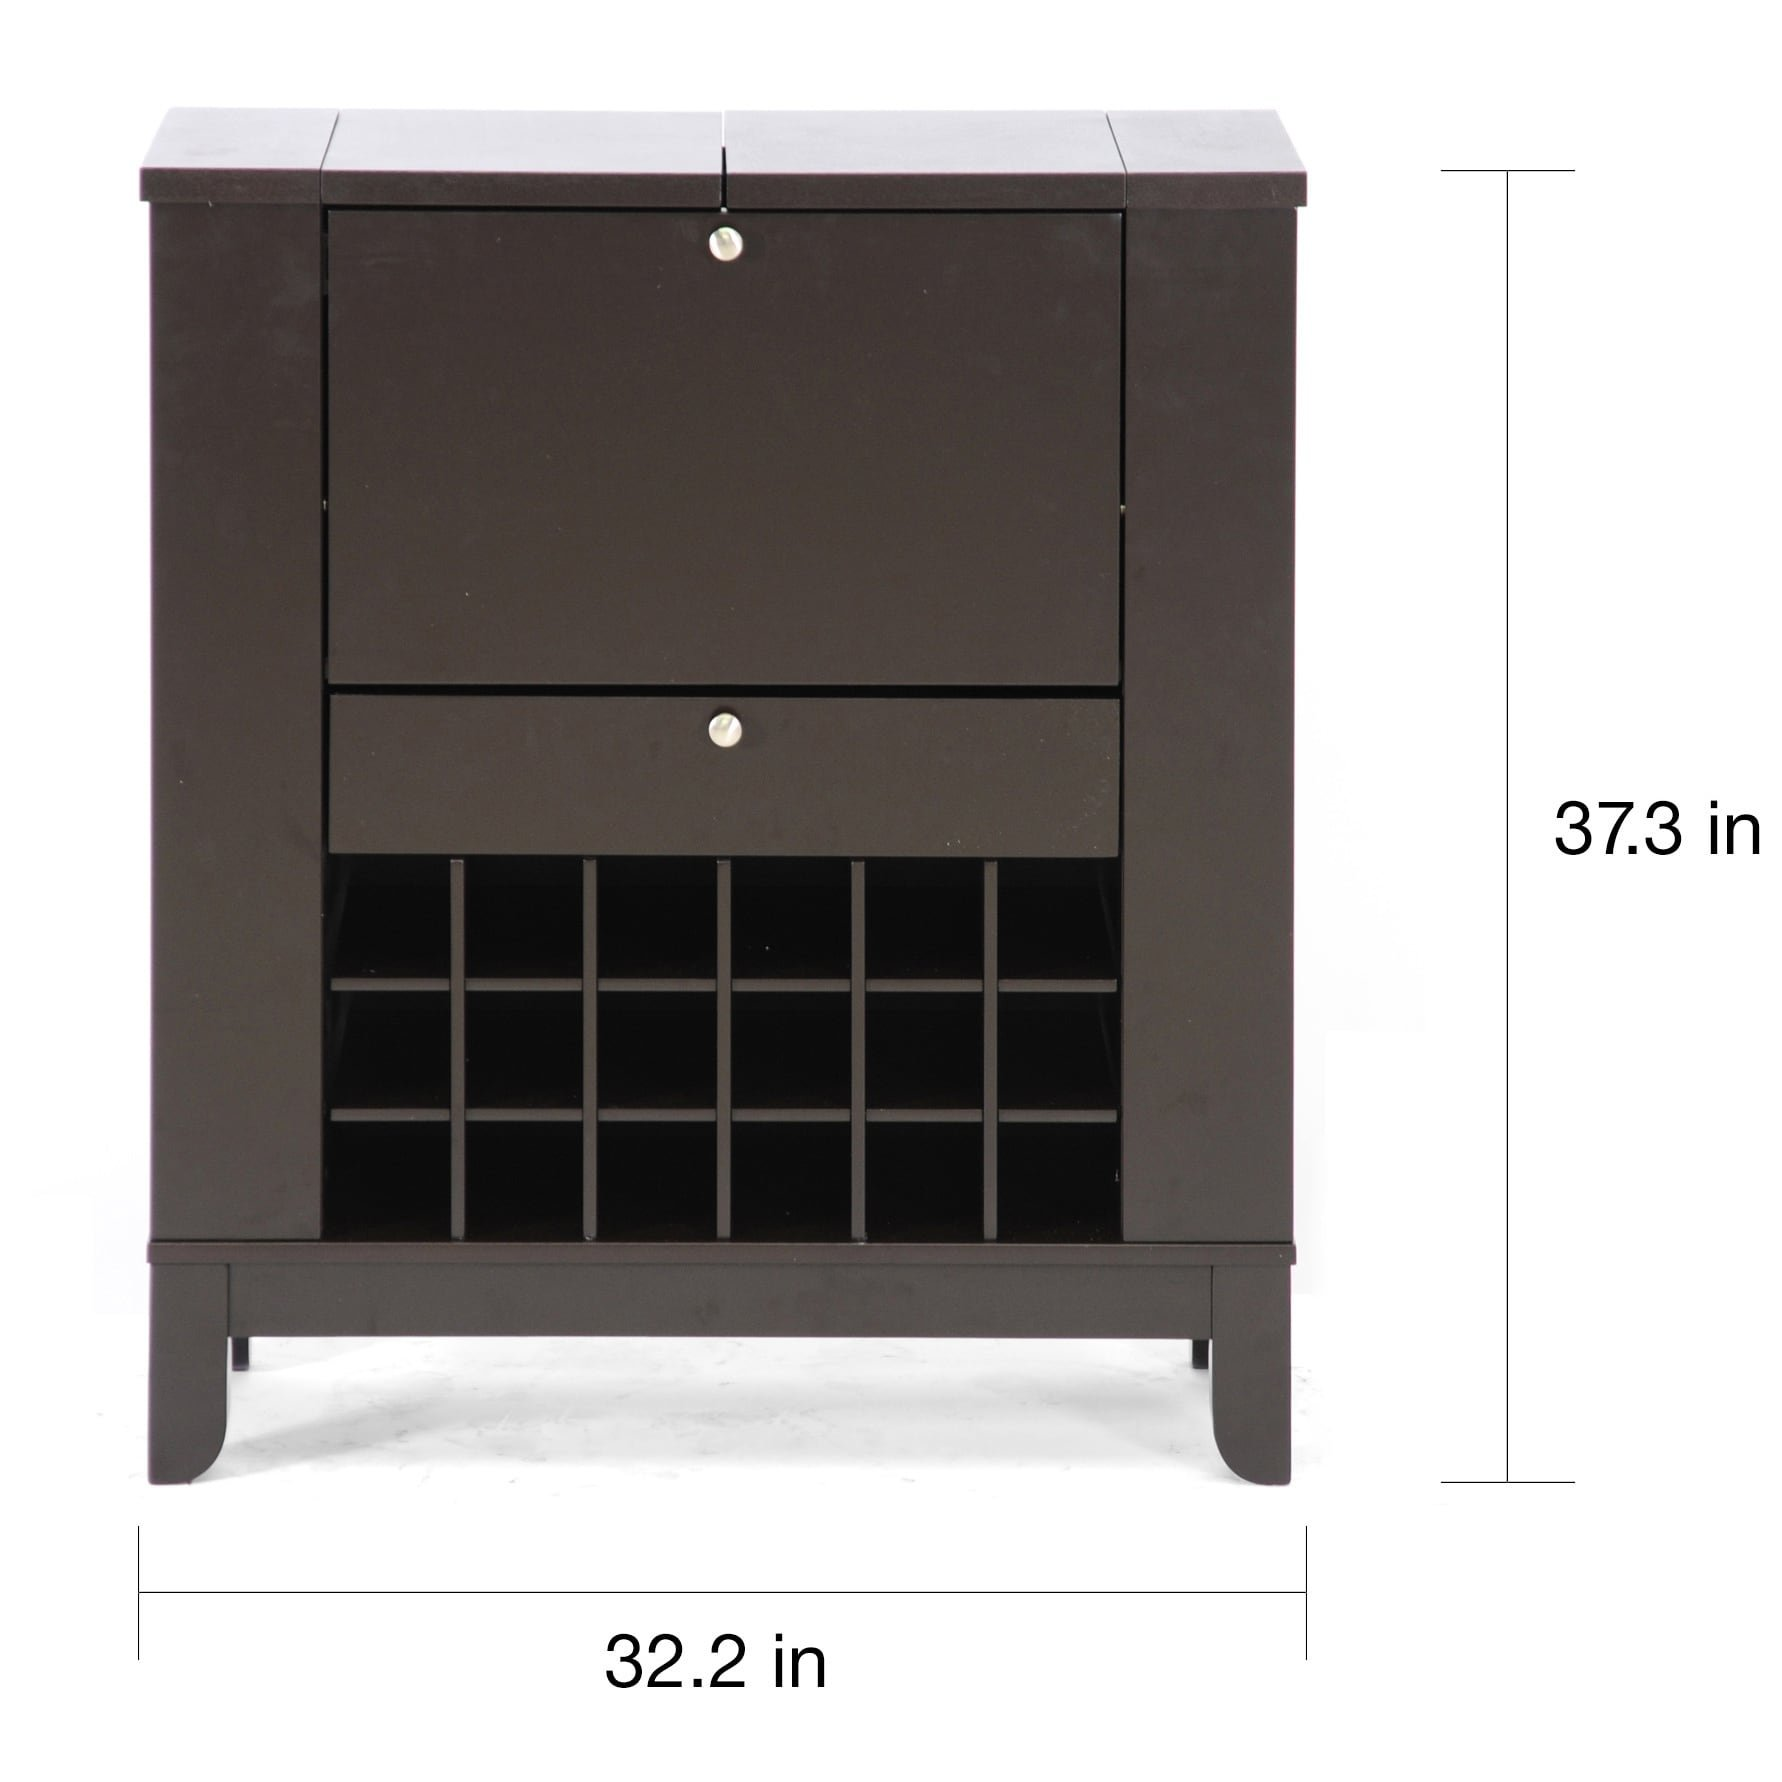 Contemporary Bar Cabinet, Exposed Wine Rack on Bottom and Each Side, Flip-Top Panels, Large Storage Compartment with Top Leaf Door, Silver Drawer Pulls, MDF, Wood, Veneer Construction, Brown Color by Big Apple Furniture LLC